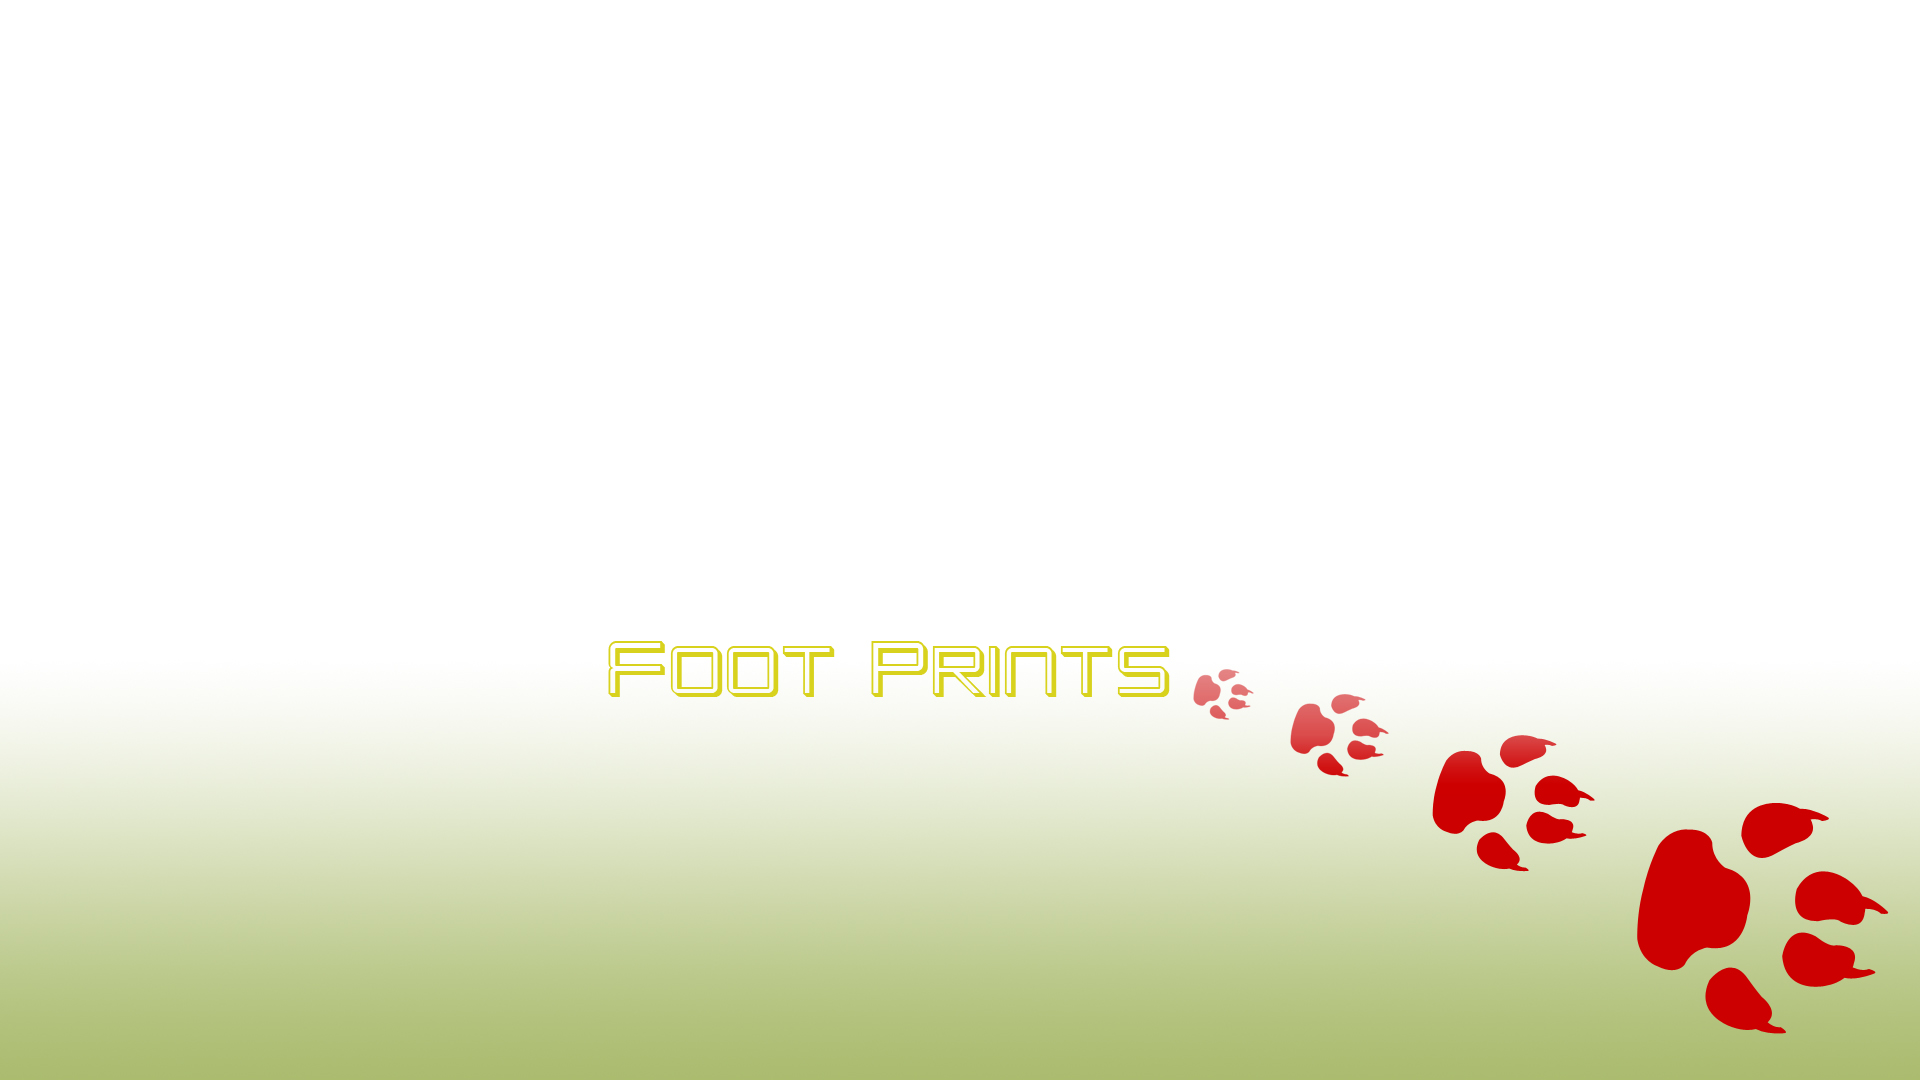 Wallpaper for Windows XP desk top wallpaper Foot Prints 1920x1080